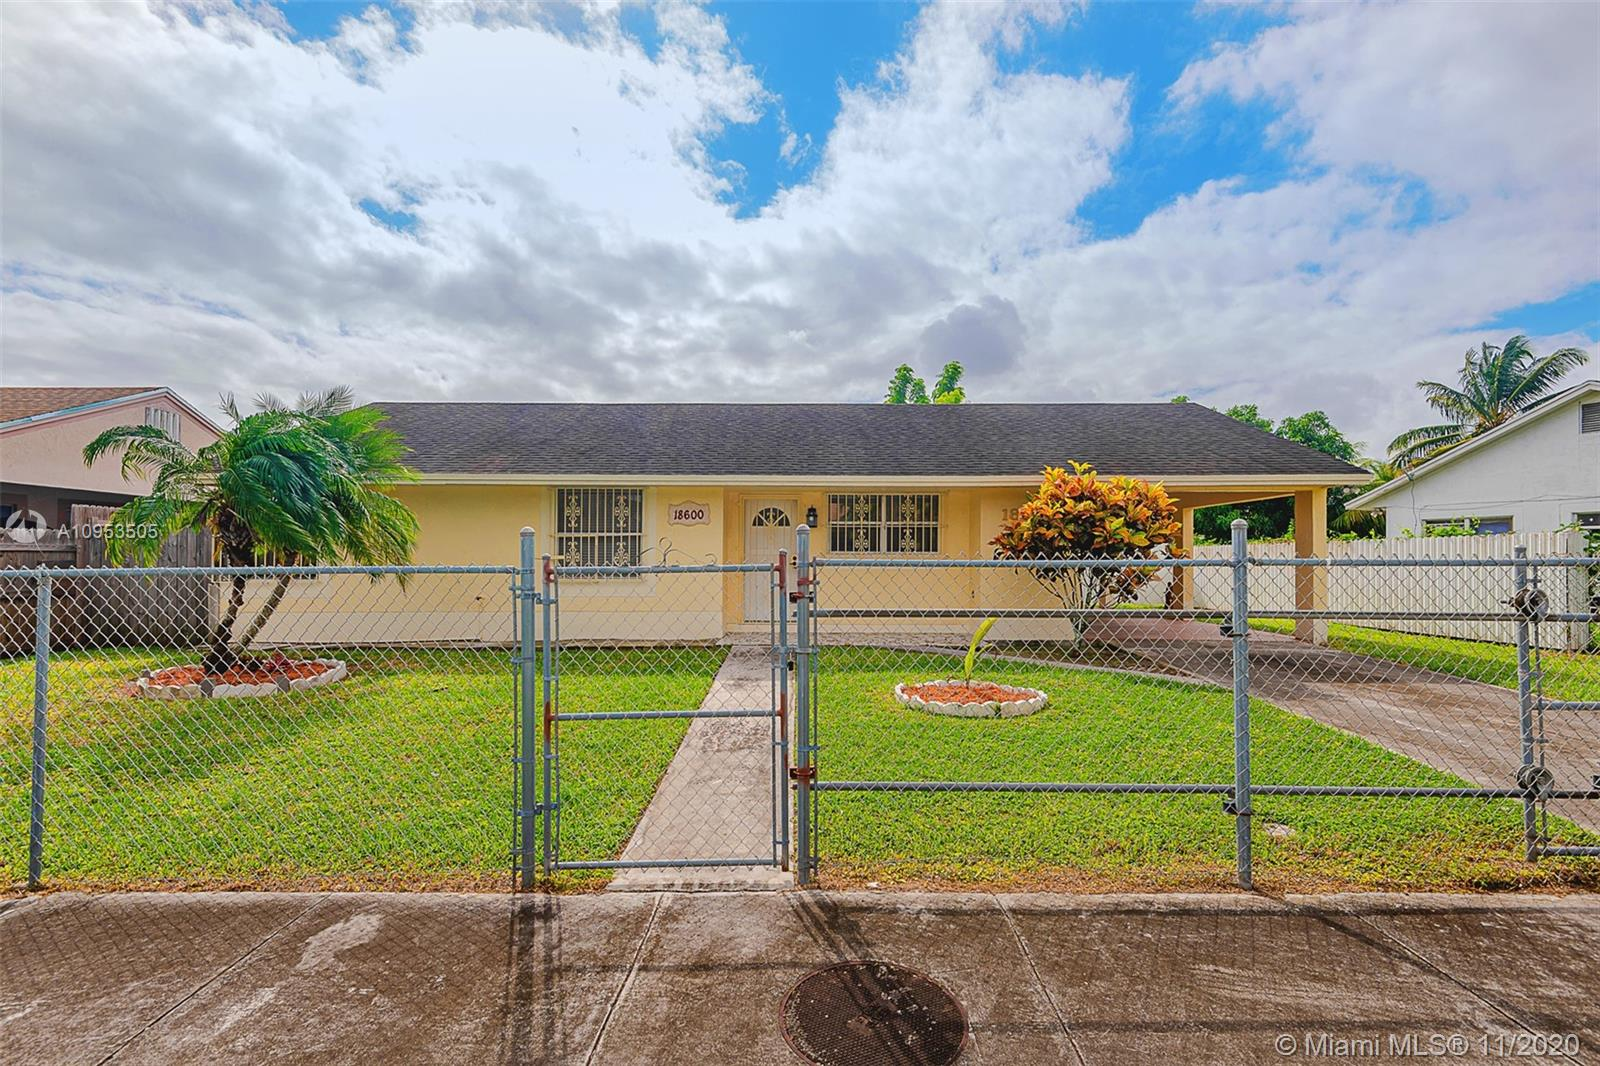 18600 SW 356th St Property Photo - Homestead, FL real estate listing